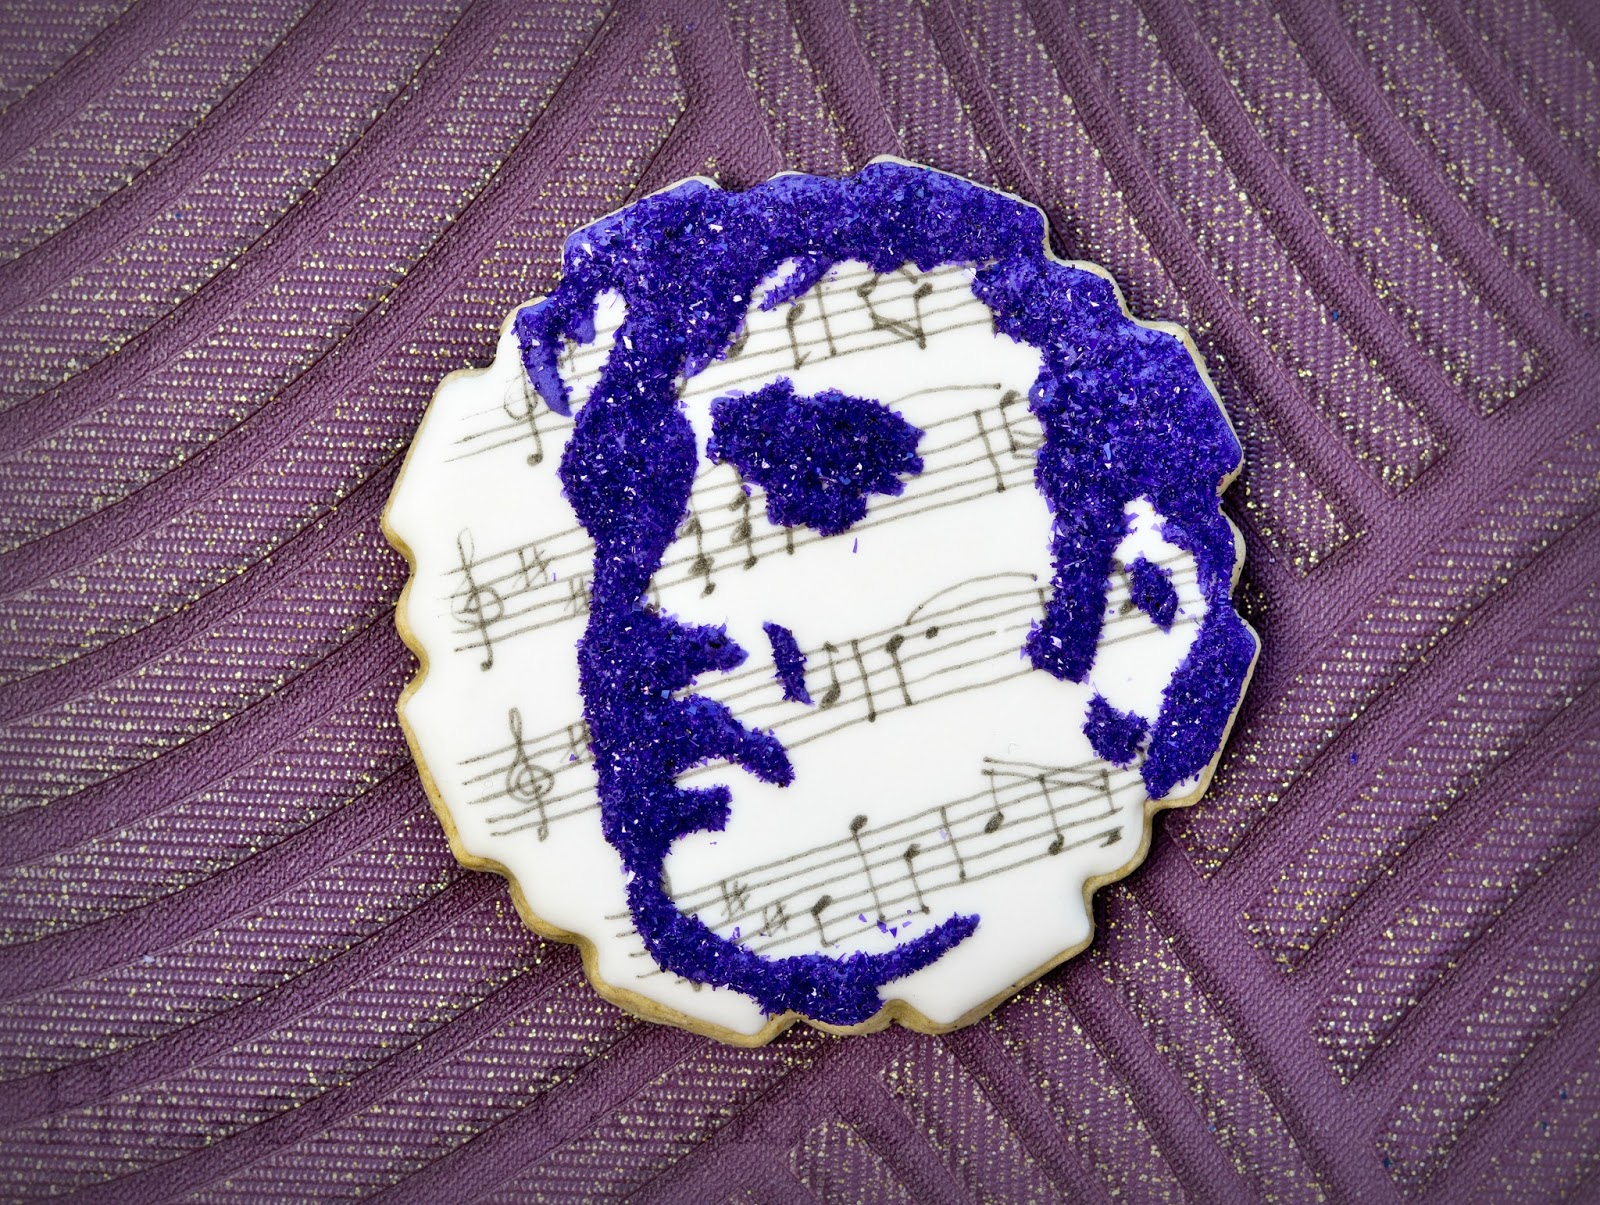 Elvis silhouette cookie in glitter on hand drawn musical notation background, by Honeycat Cookies.